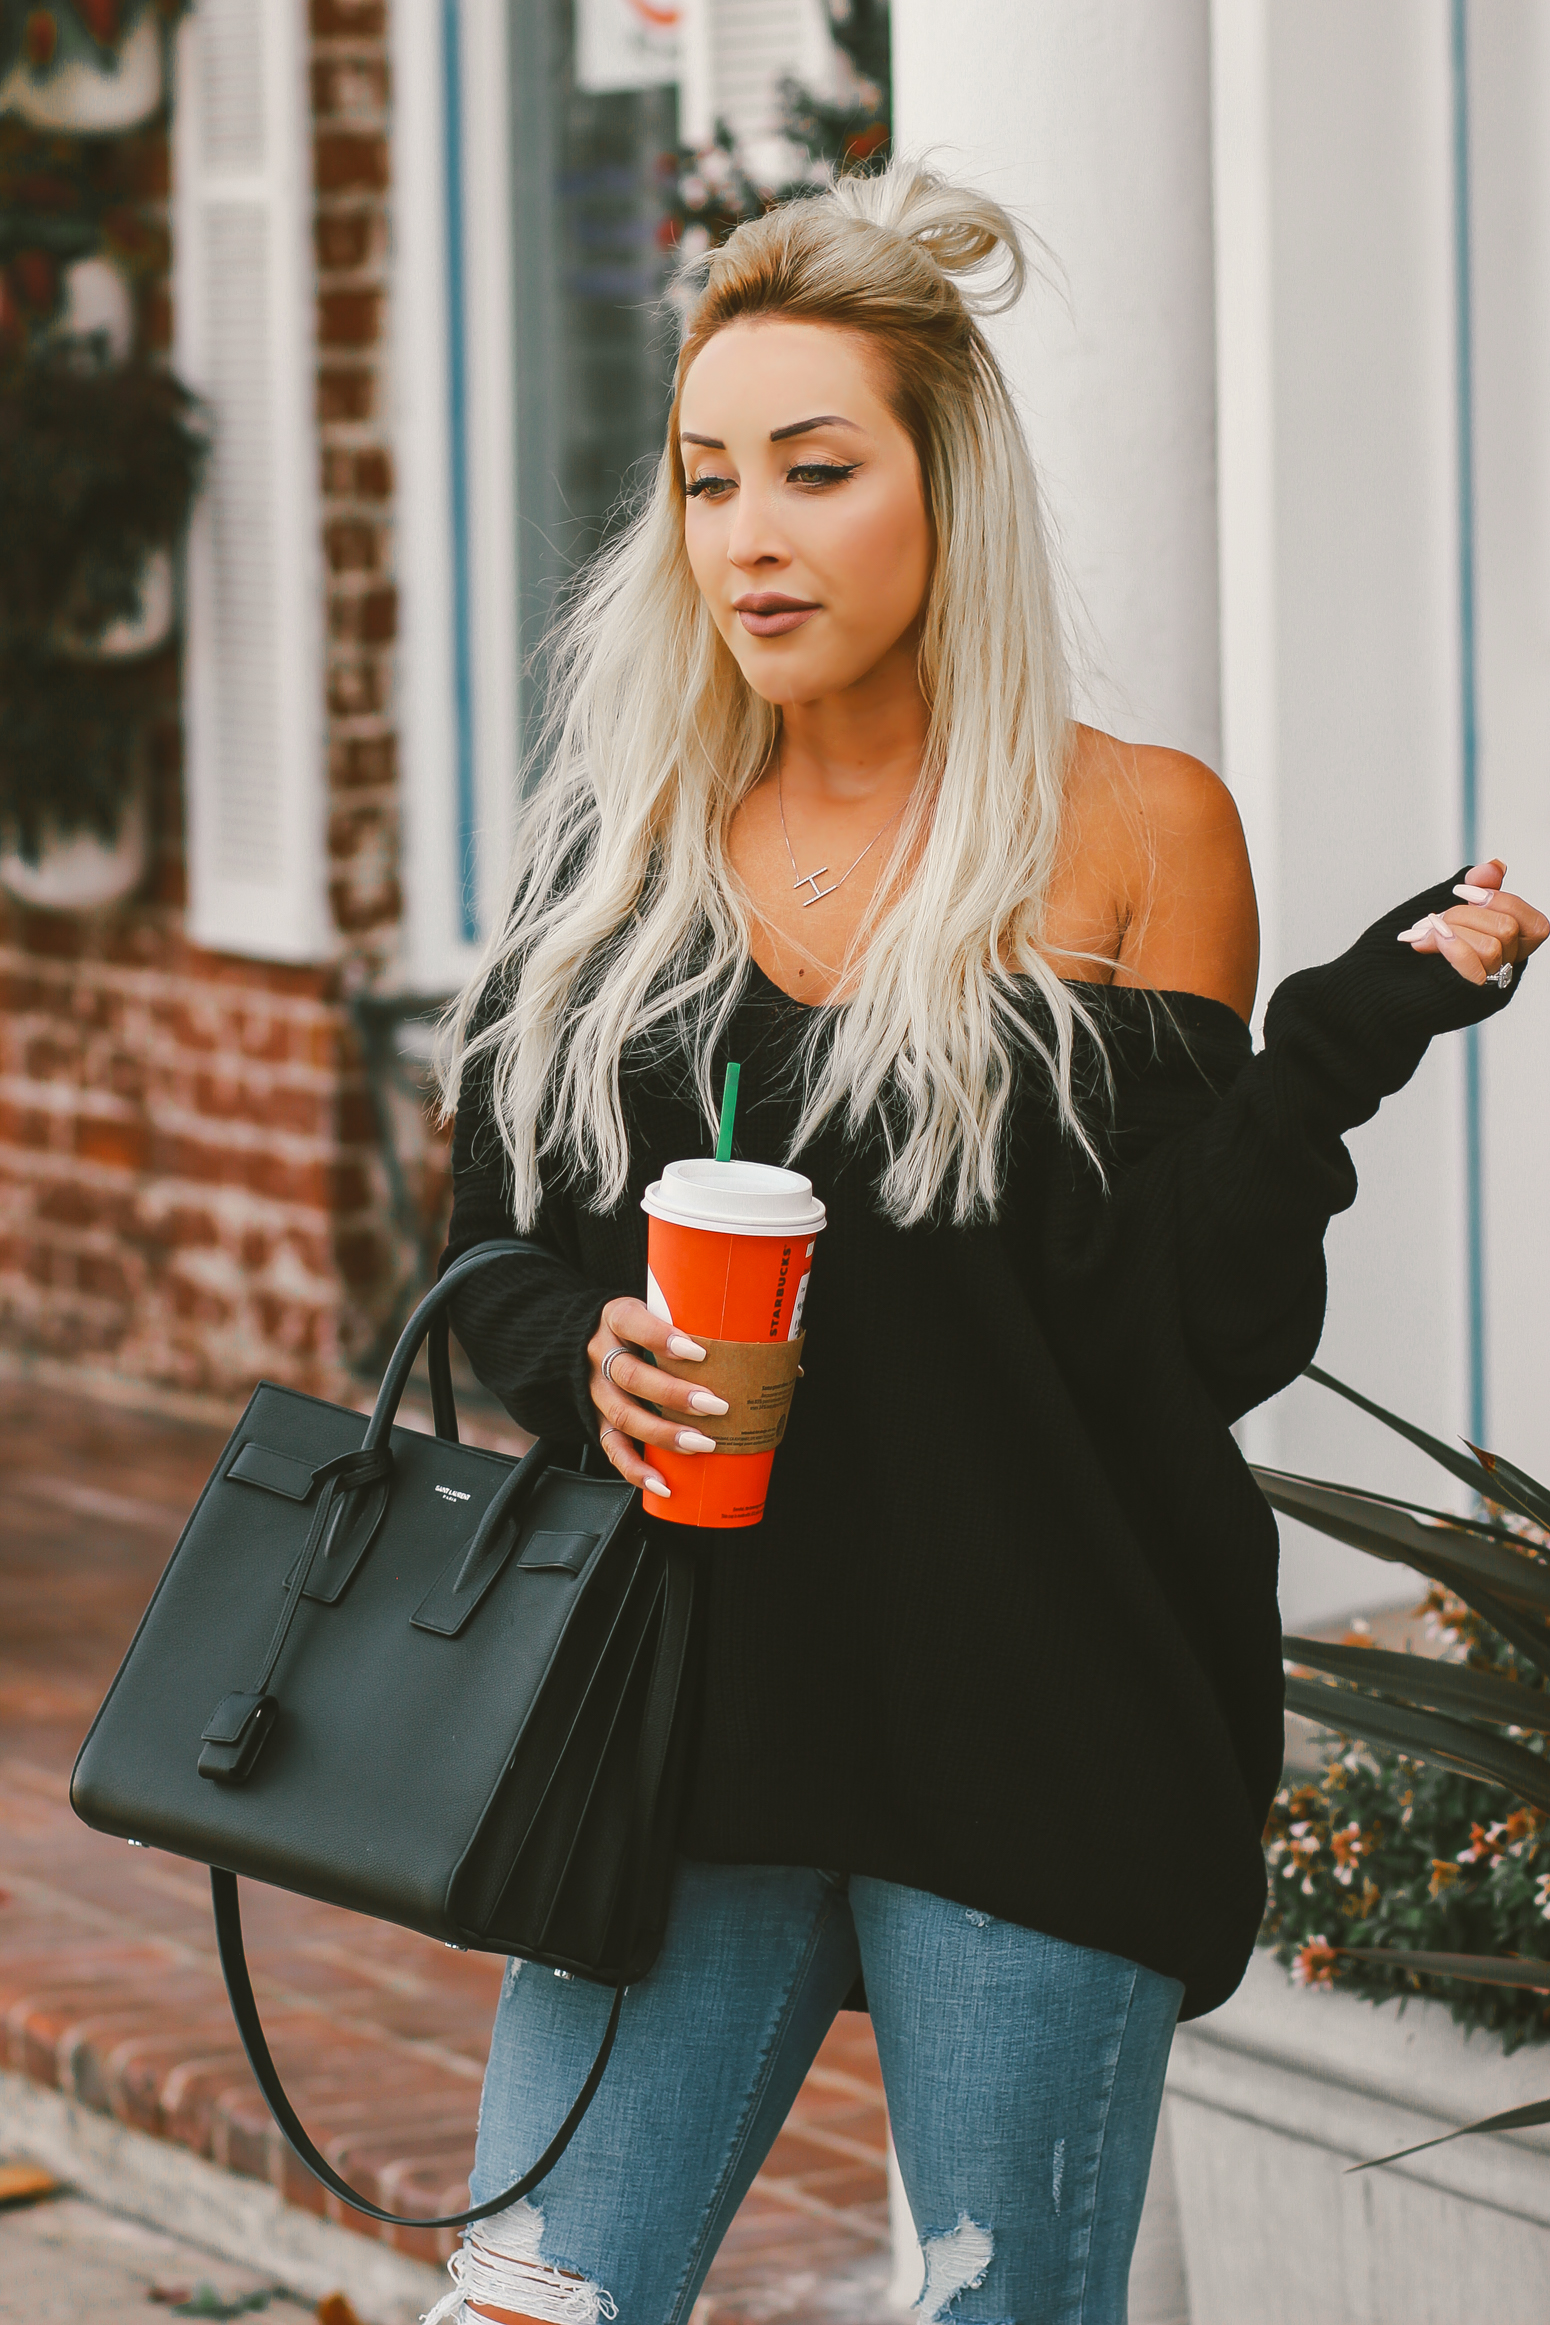 Blondie in the City | Loose Black Knit Sweater | Givenchy Slides | YSL Bag | Fall Outfit Inspo